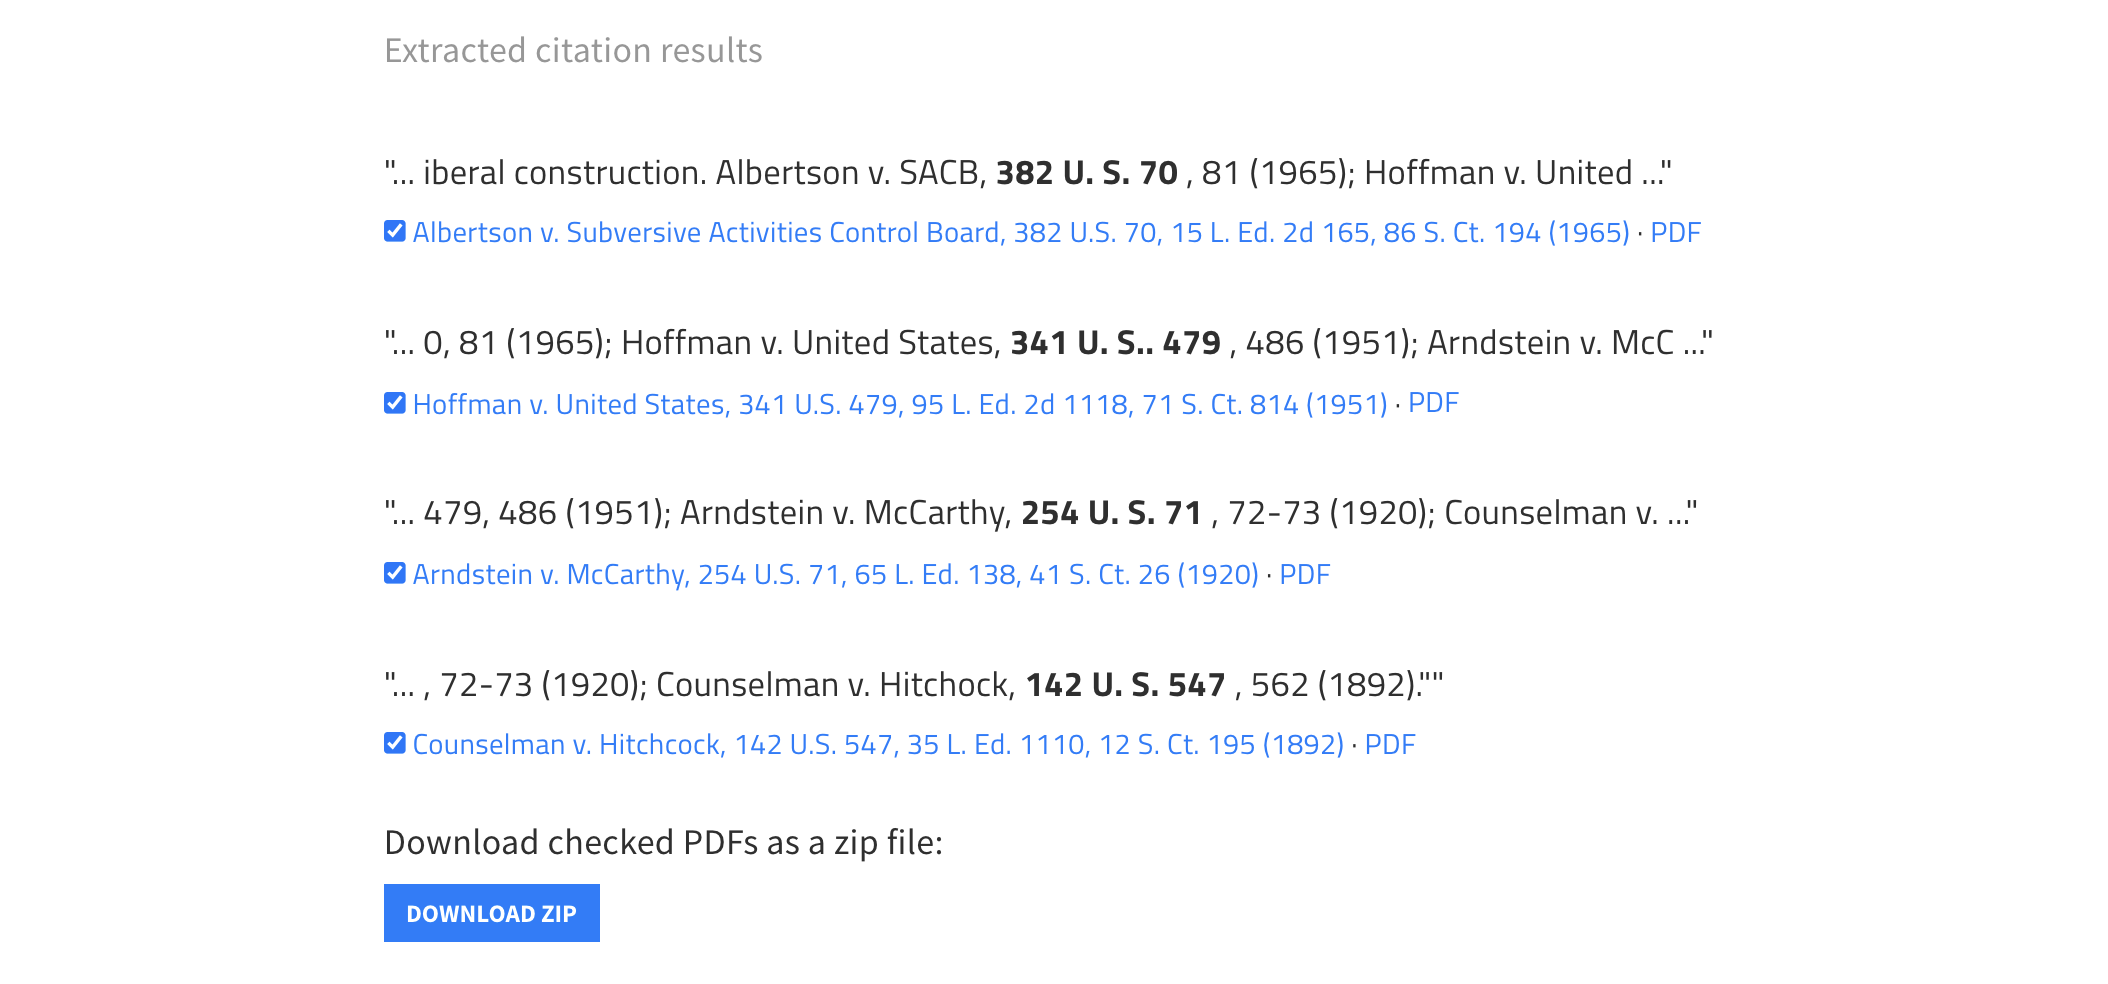 Screenshot of Fetch PDFs showing the list of cases cited in the excerpt, and the option to download PDFs of those cases as a zip file.